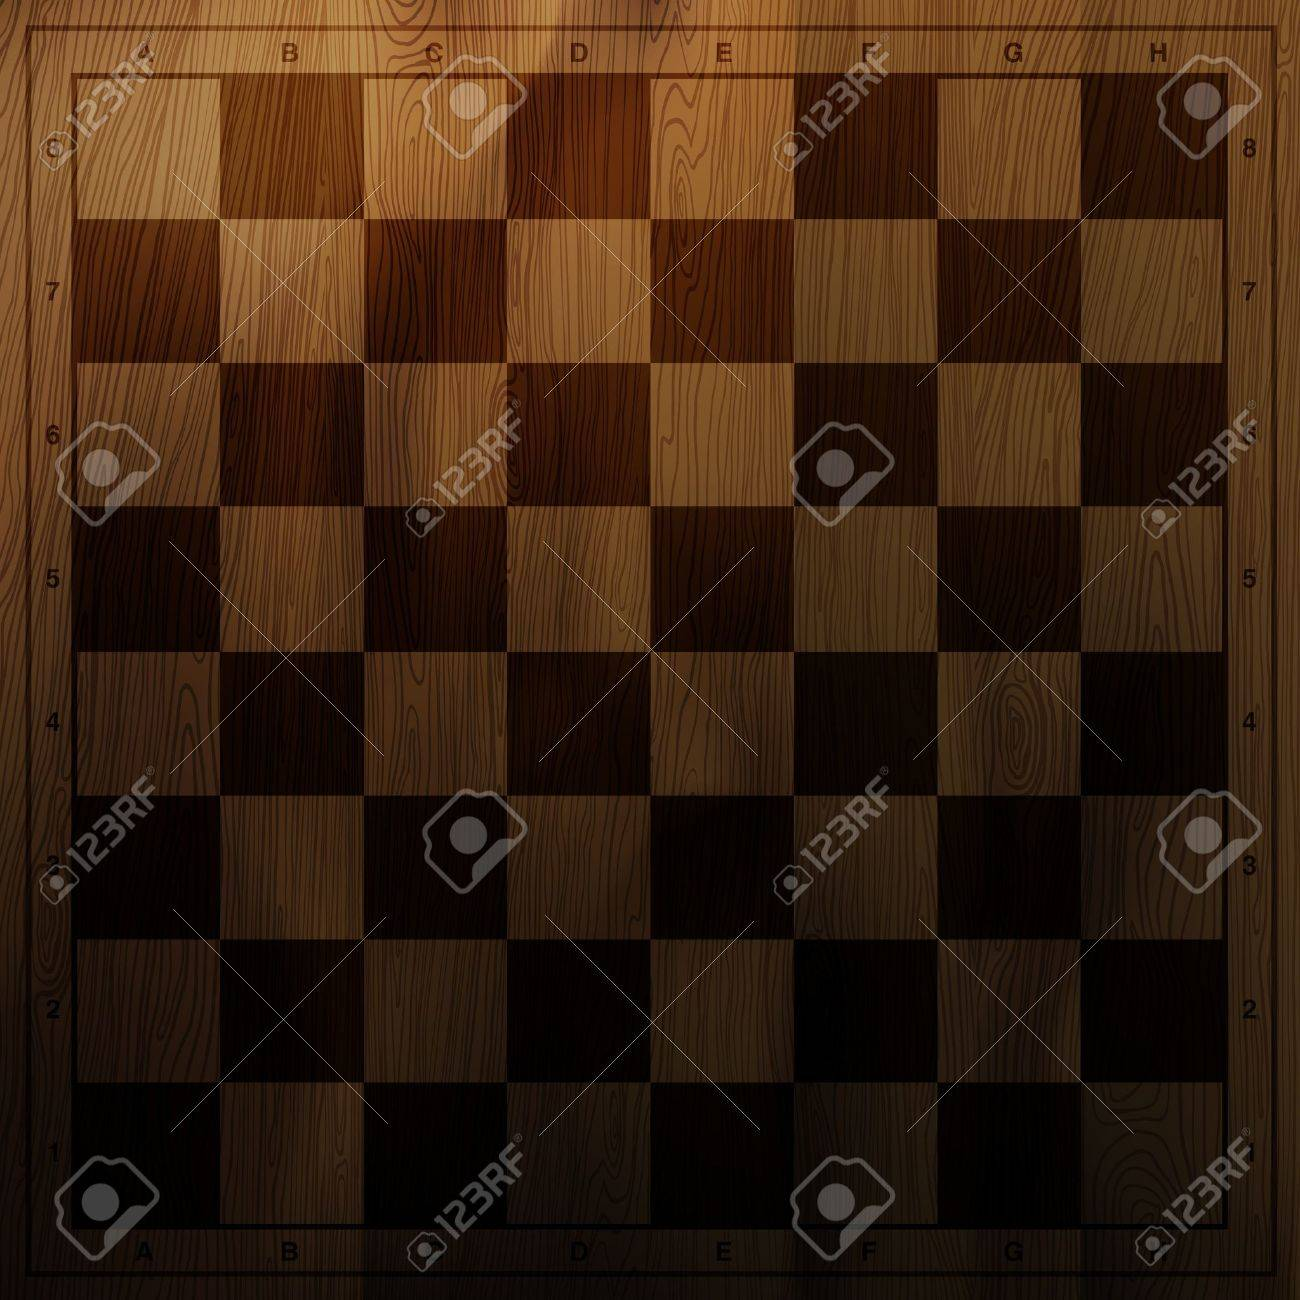 Vintage chess board background. Stock Vector - 12286080